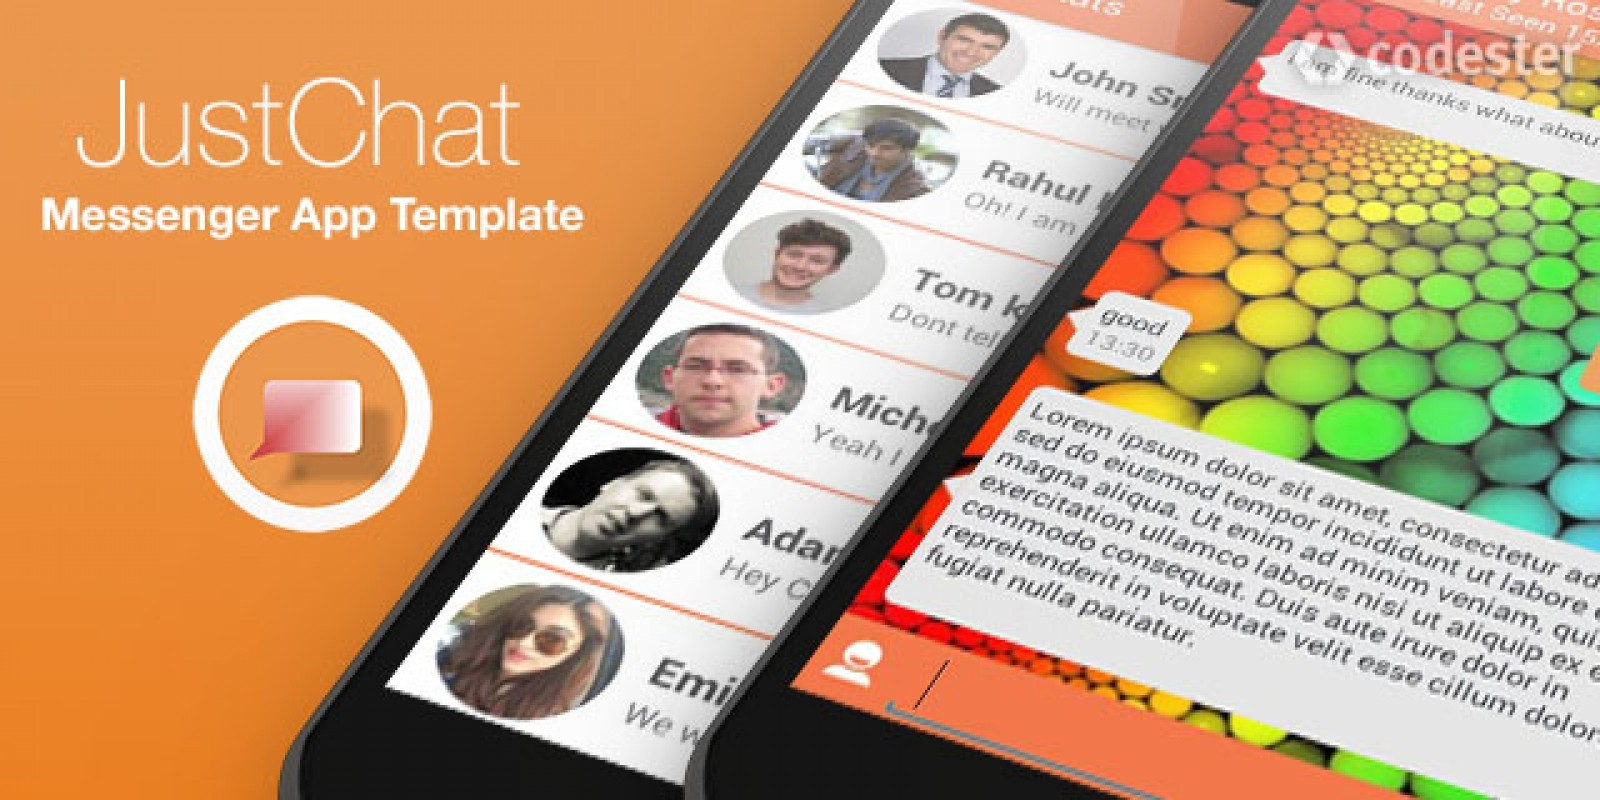 JustChat - Android Messenger App Template